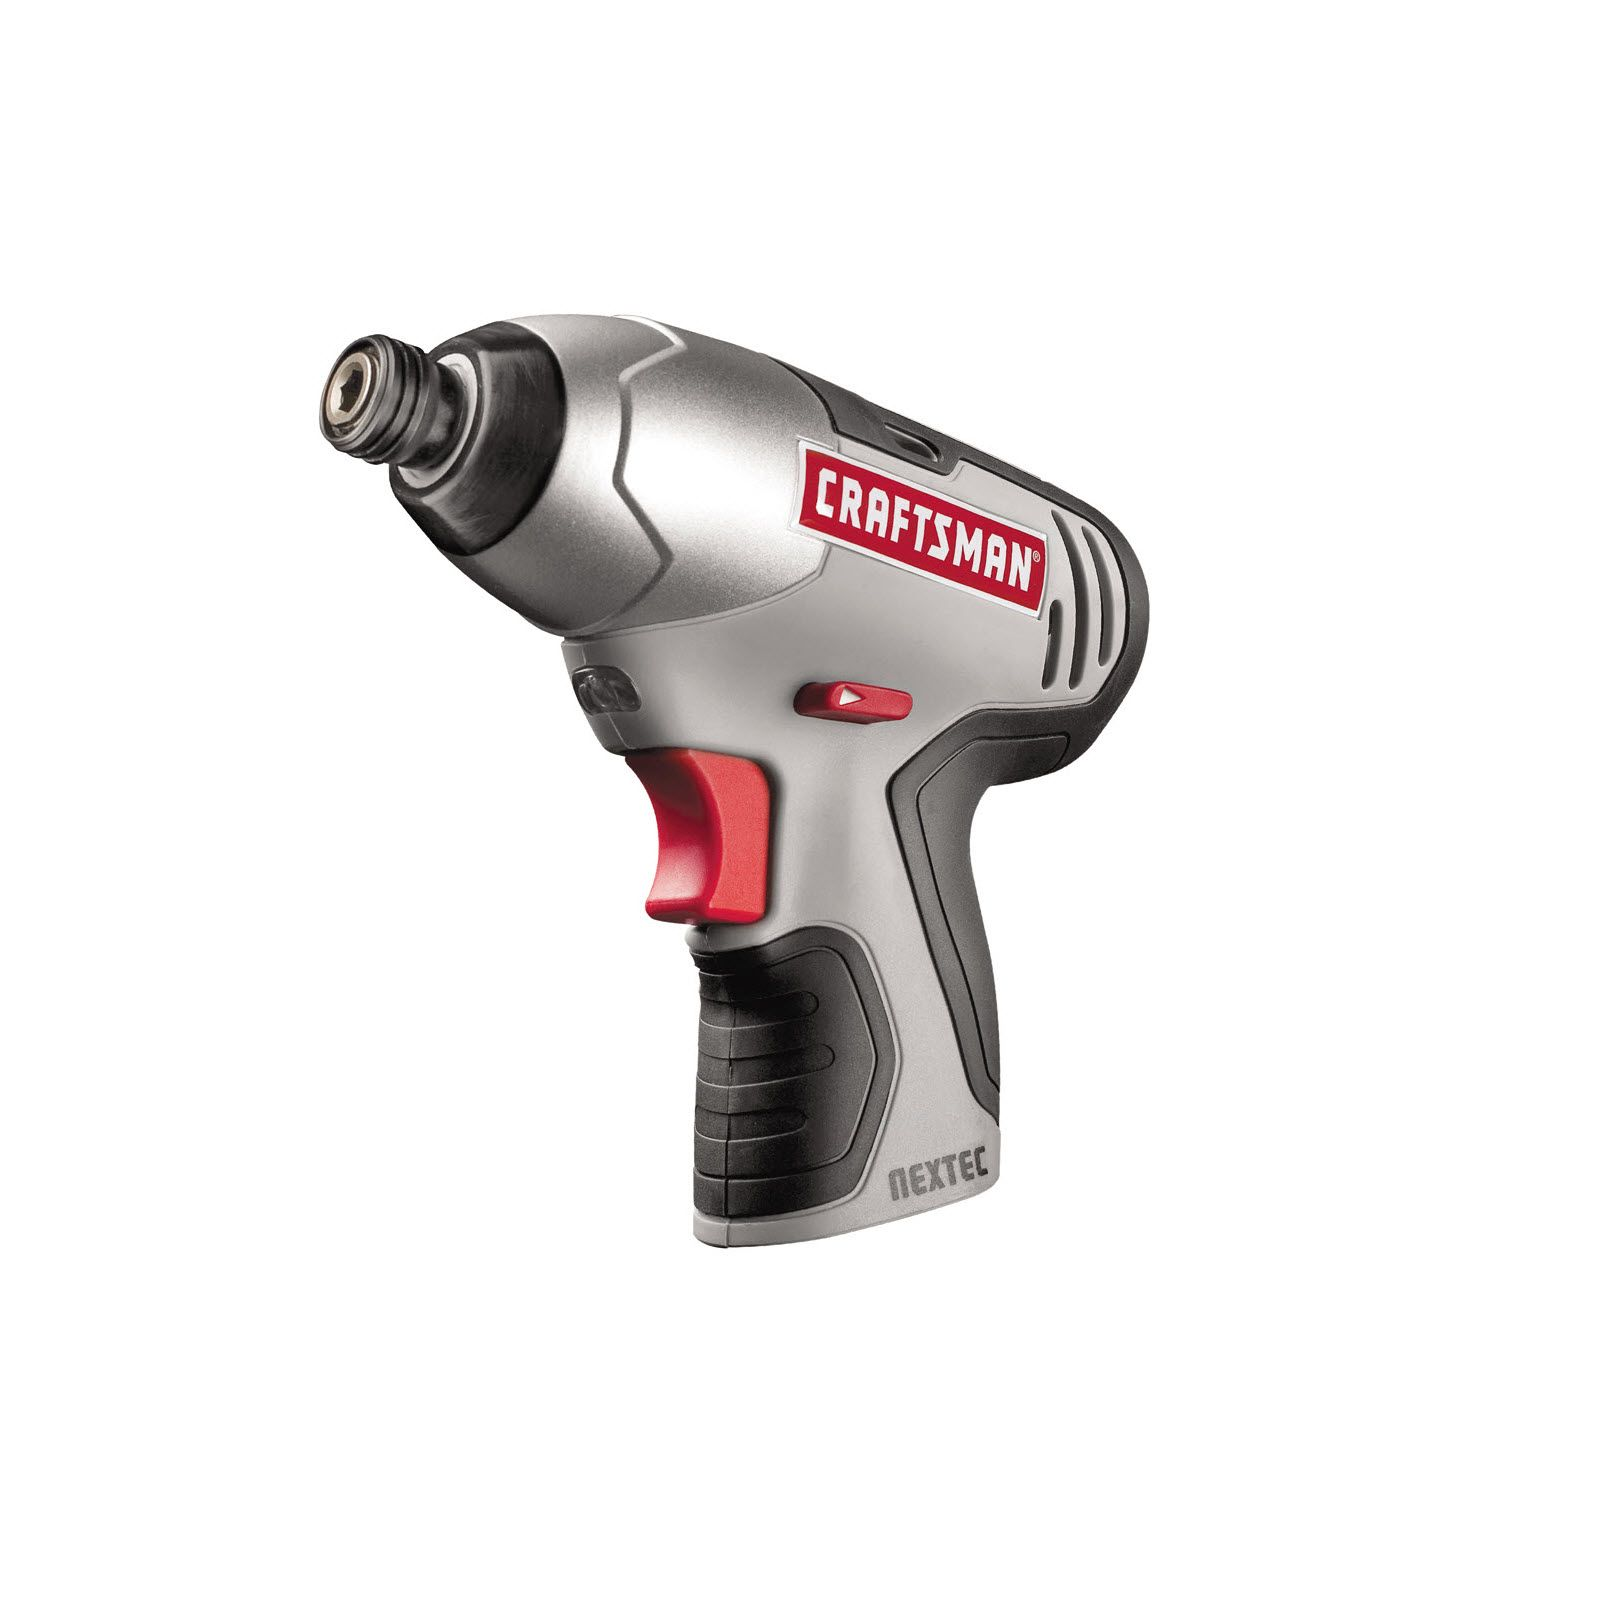 Craftsman 12.0 Volt Lithium-Ion Drill and Impact Combo Kit